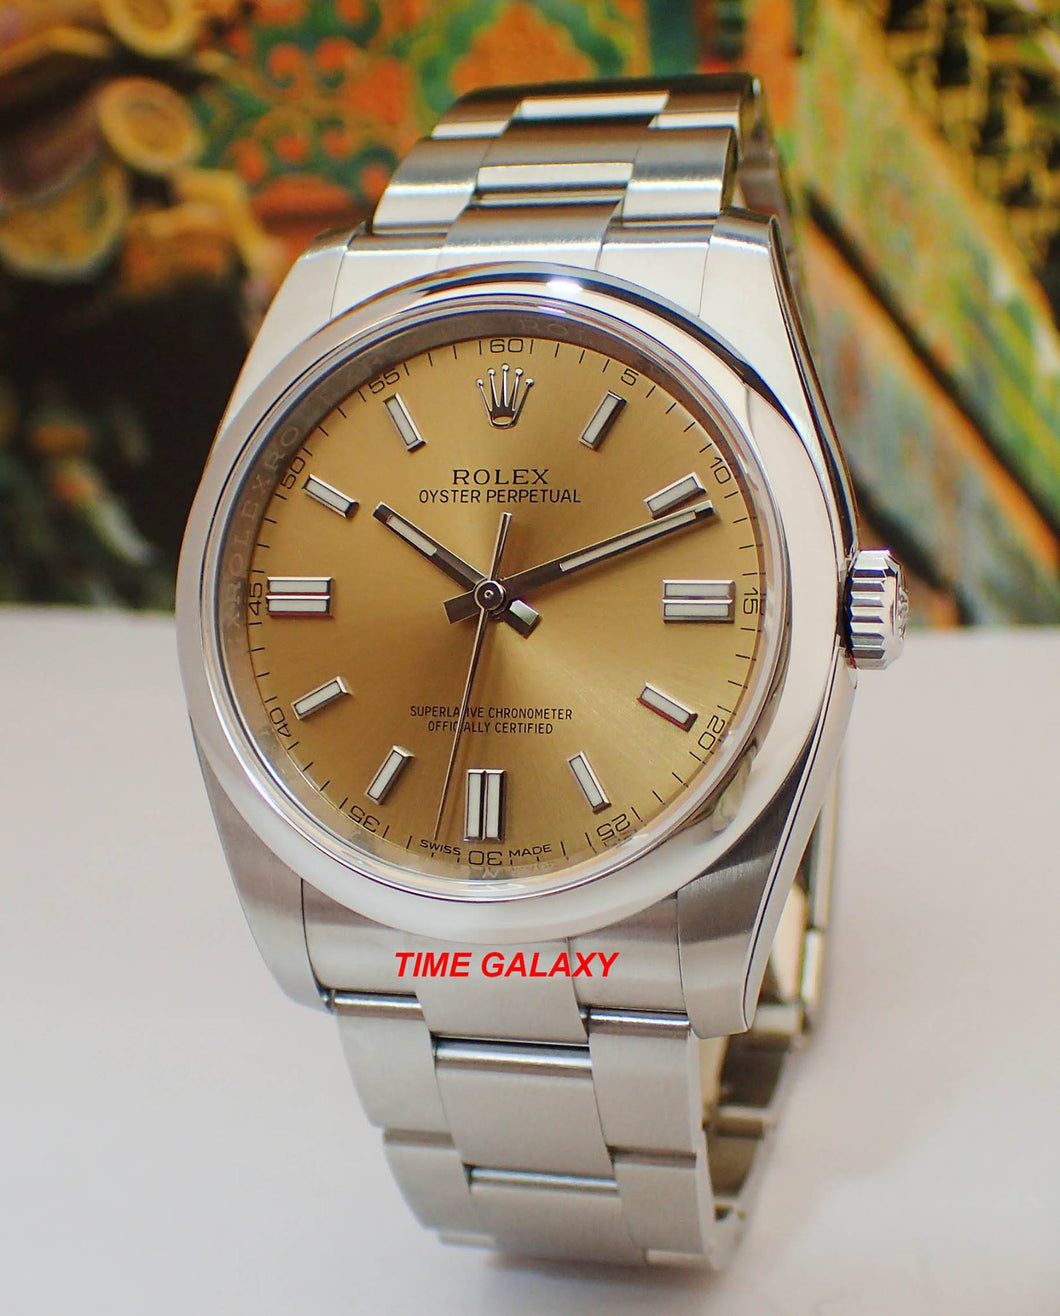 Rolex Oyster Perpetual 36 White Grape 116000-0011 watch